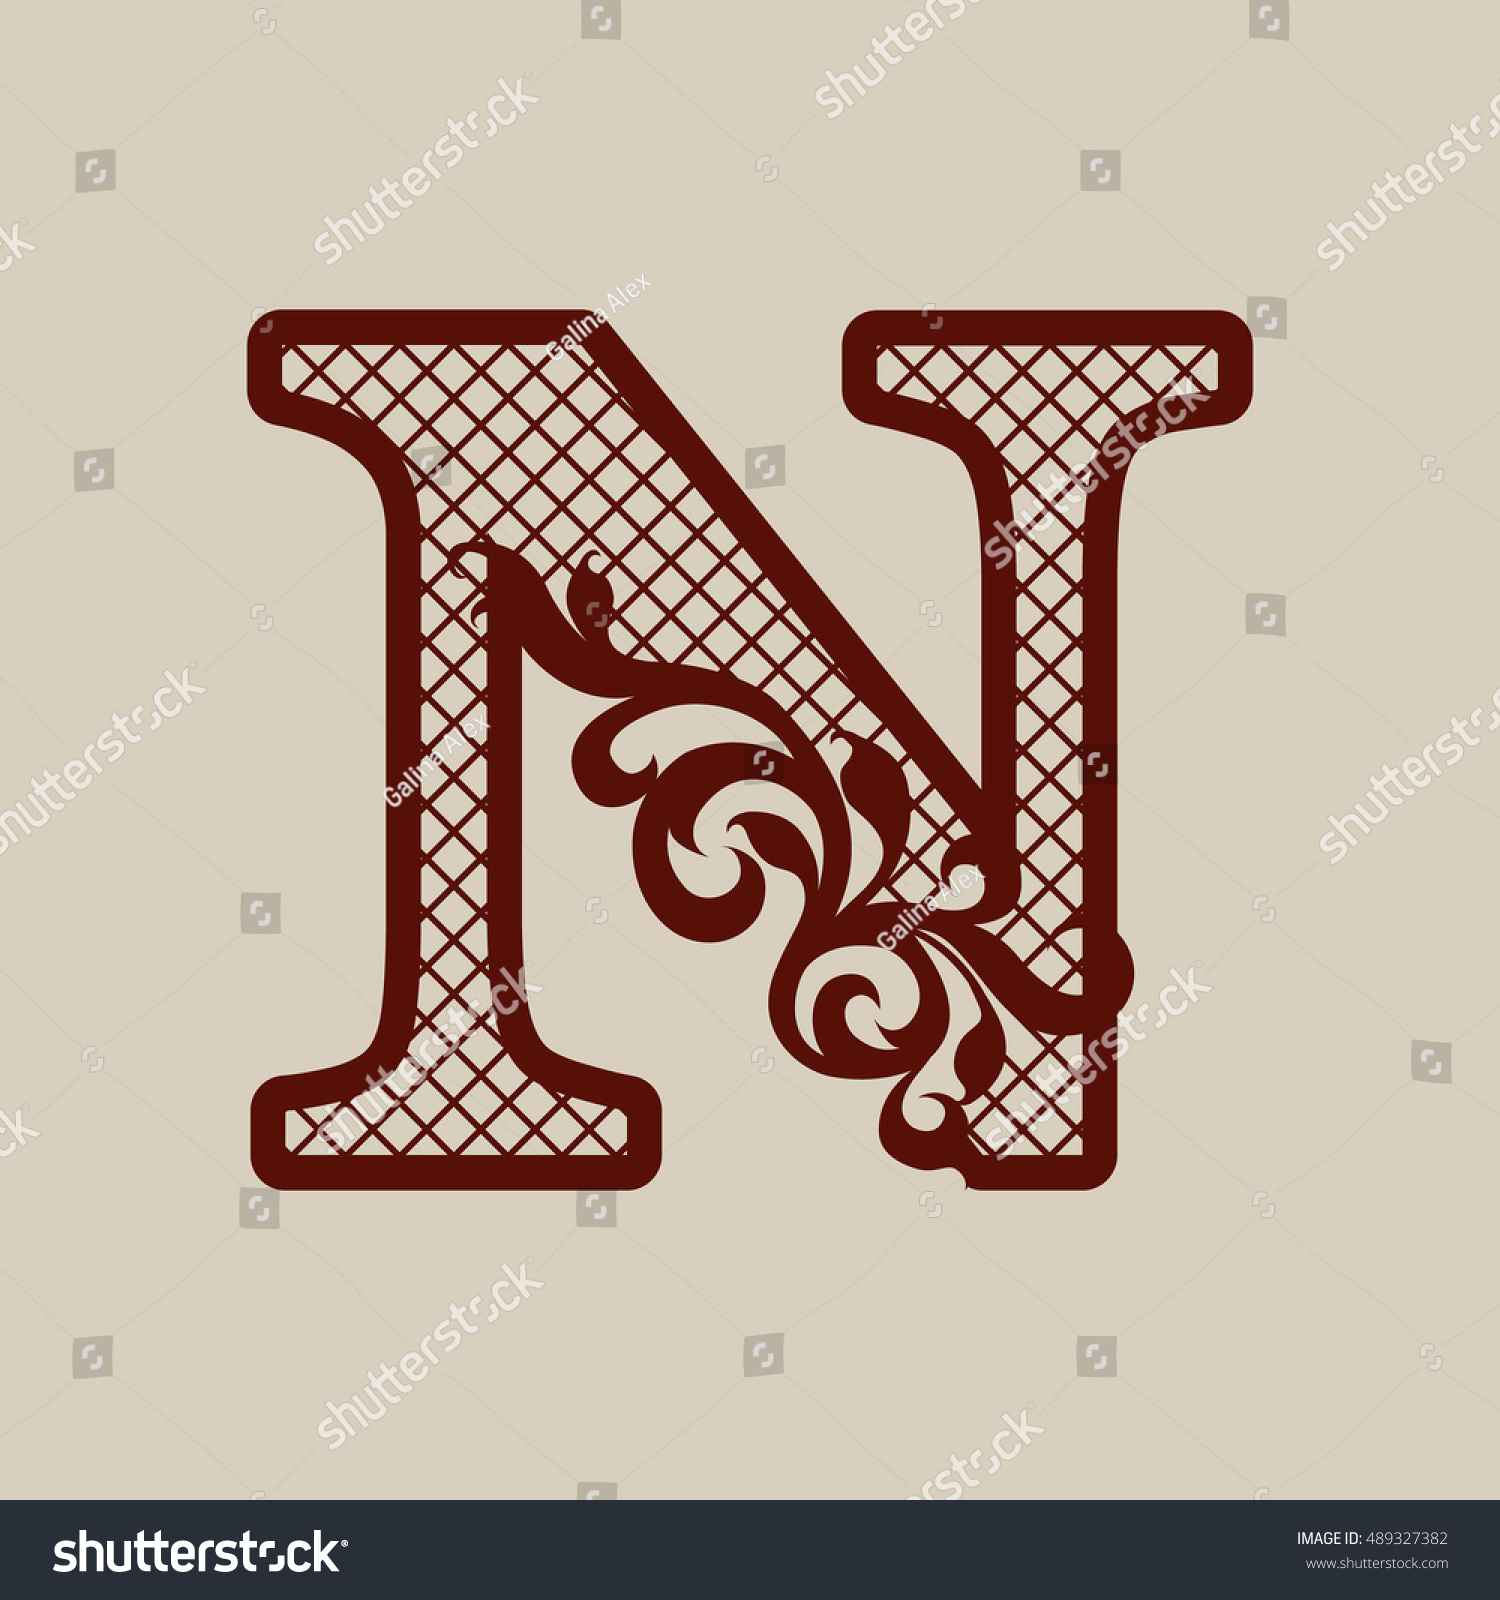 Initial Letter N Elegant Monogram Carved Stock Vector (Royalty Free ...